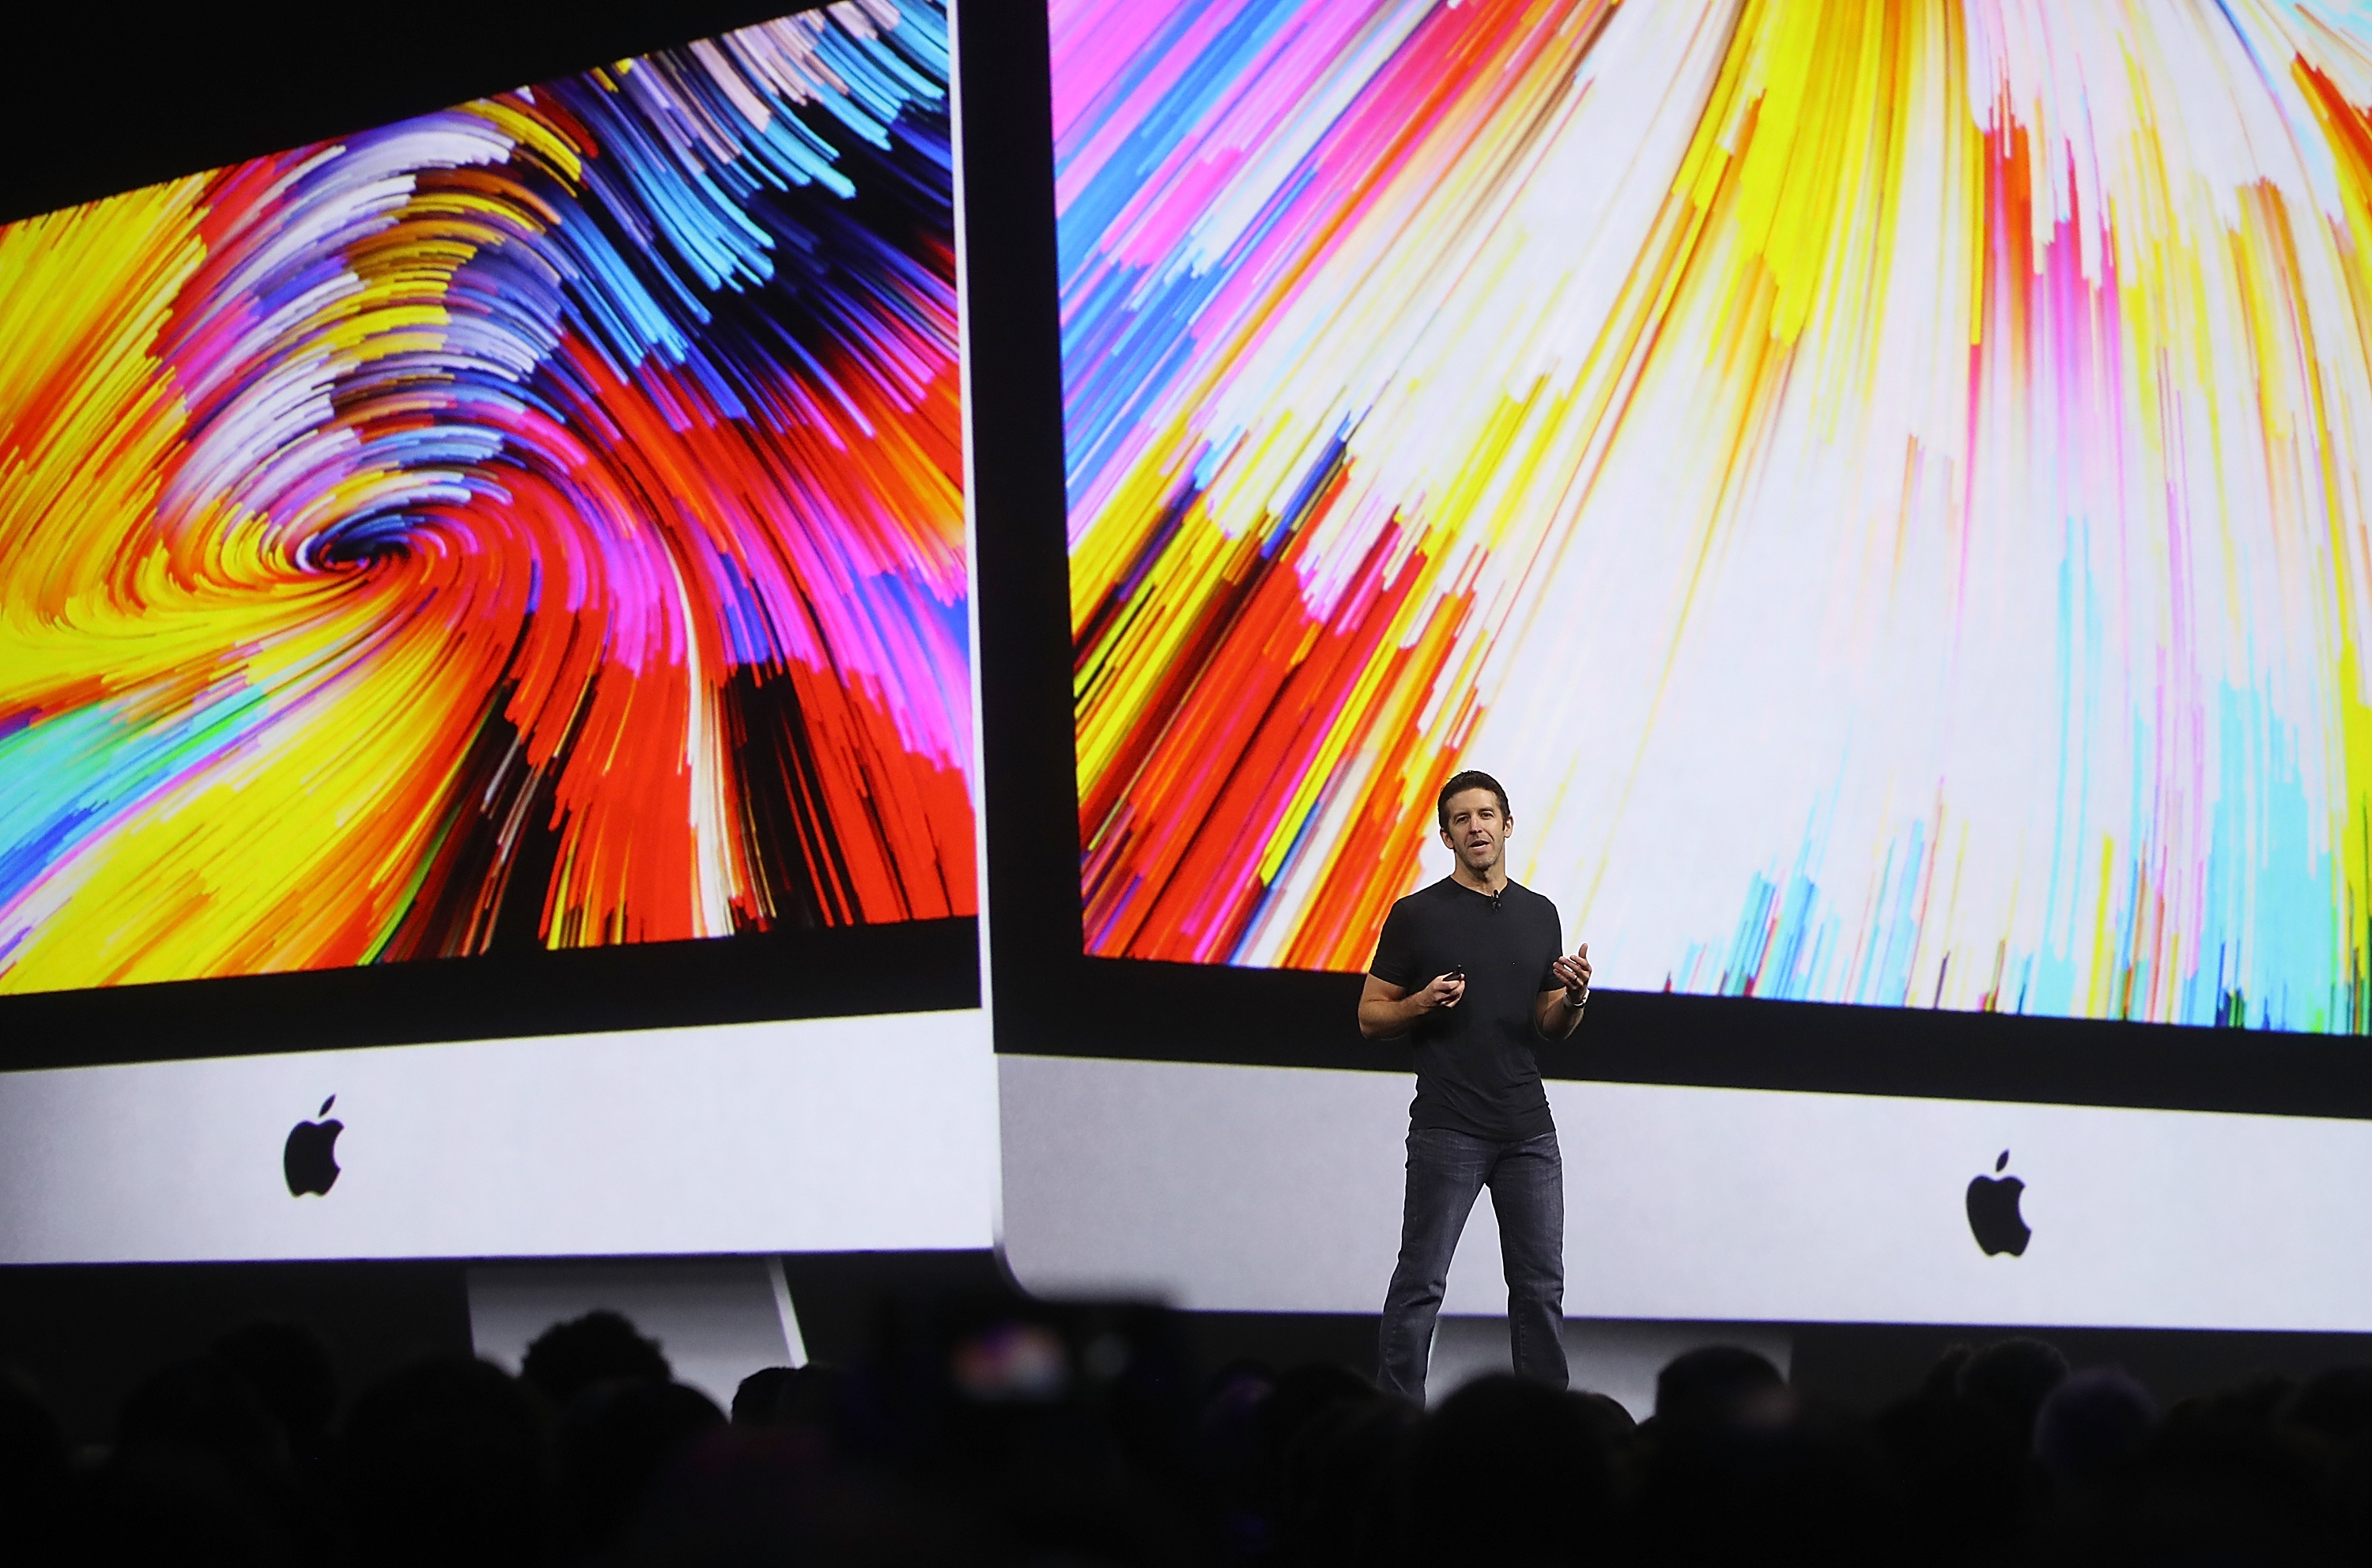 Apple's John Ternus speaks during the 2017 Apple Worldwide Developer Conference (WWDC) at the San Jose Convention Center on June 5, 2017 in San Jose, California.